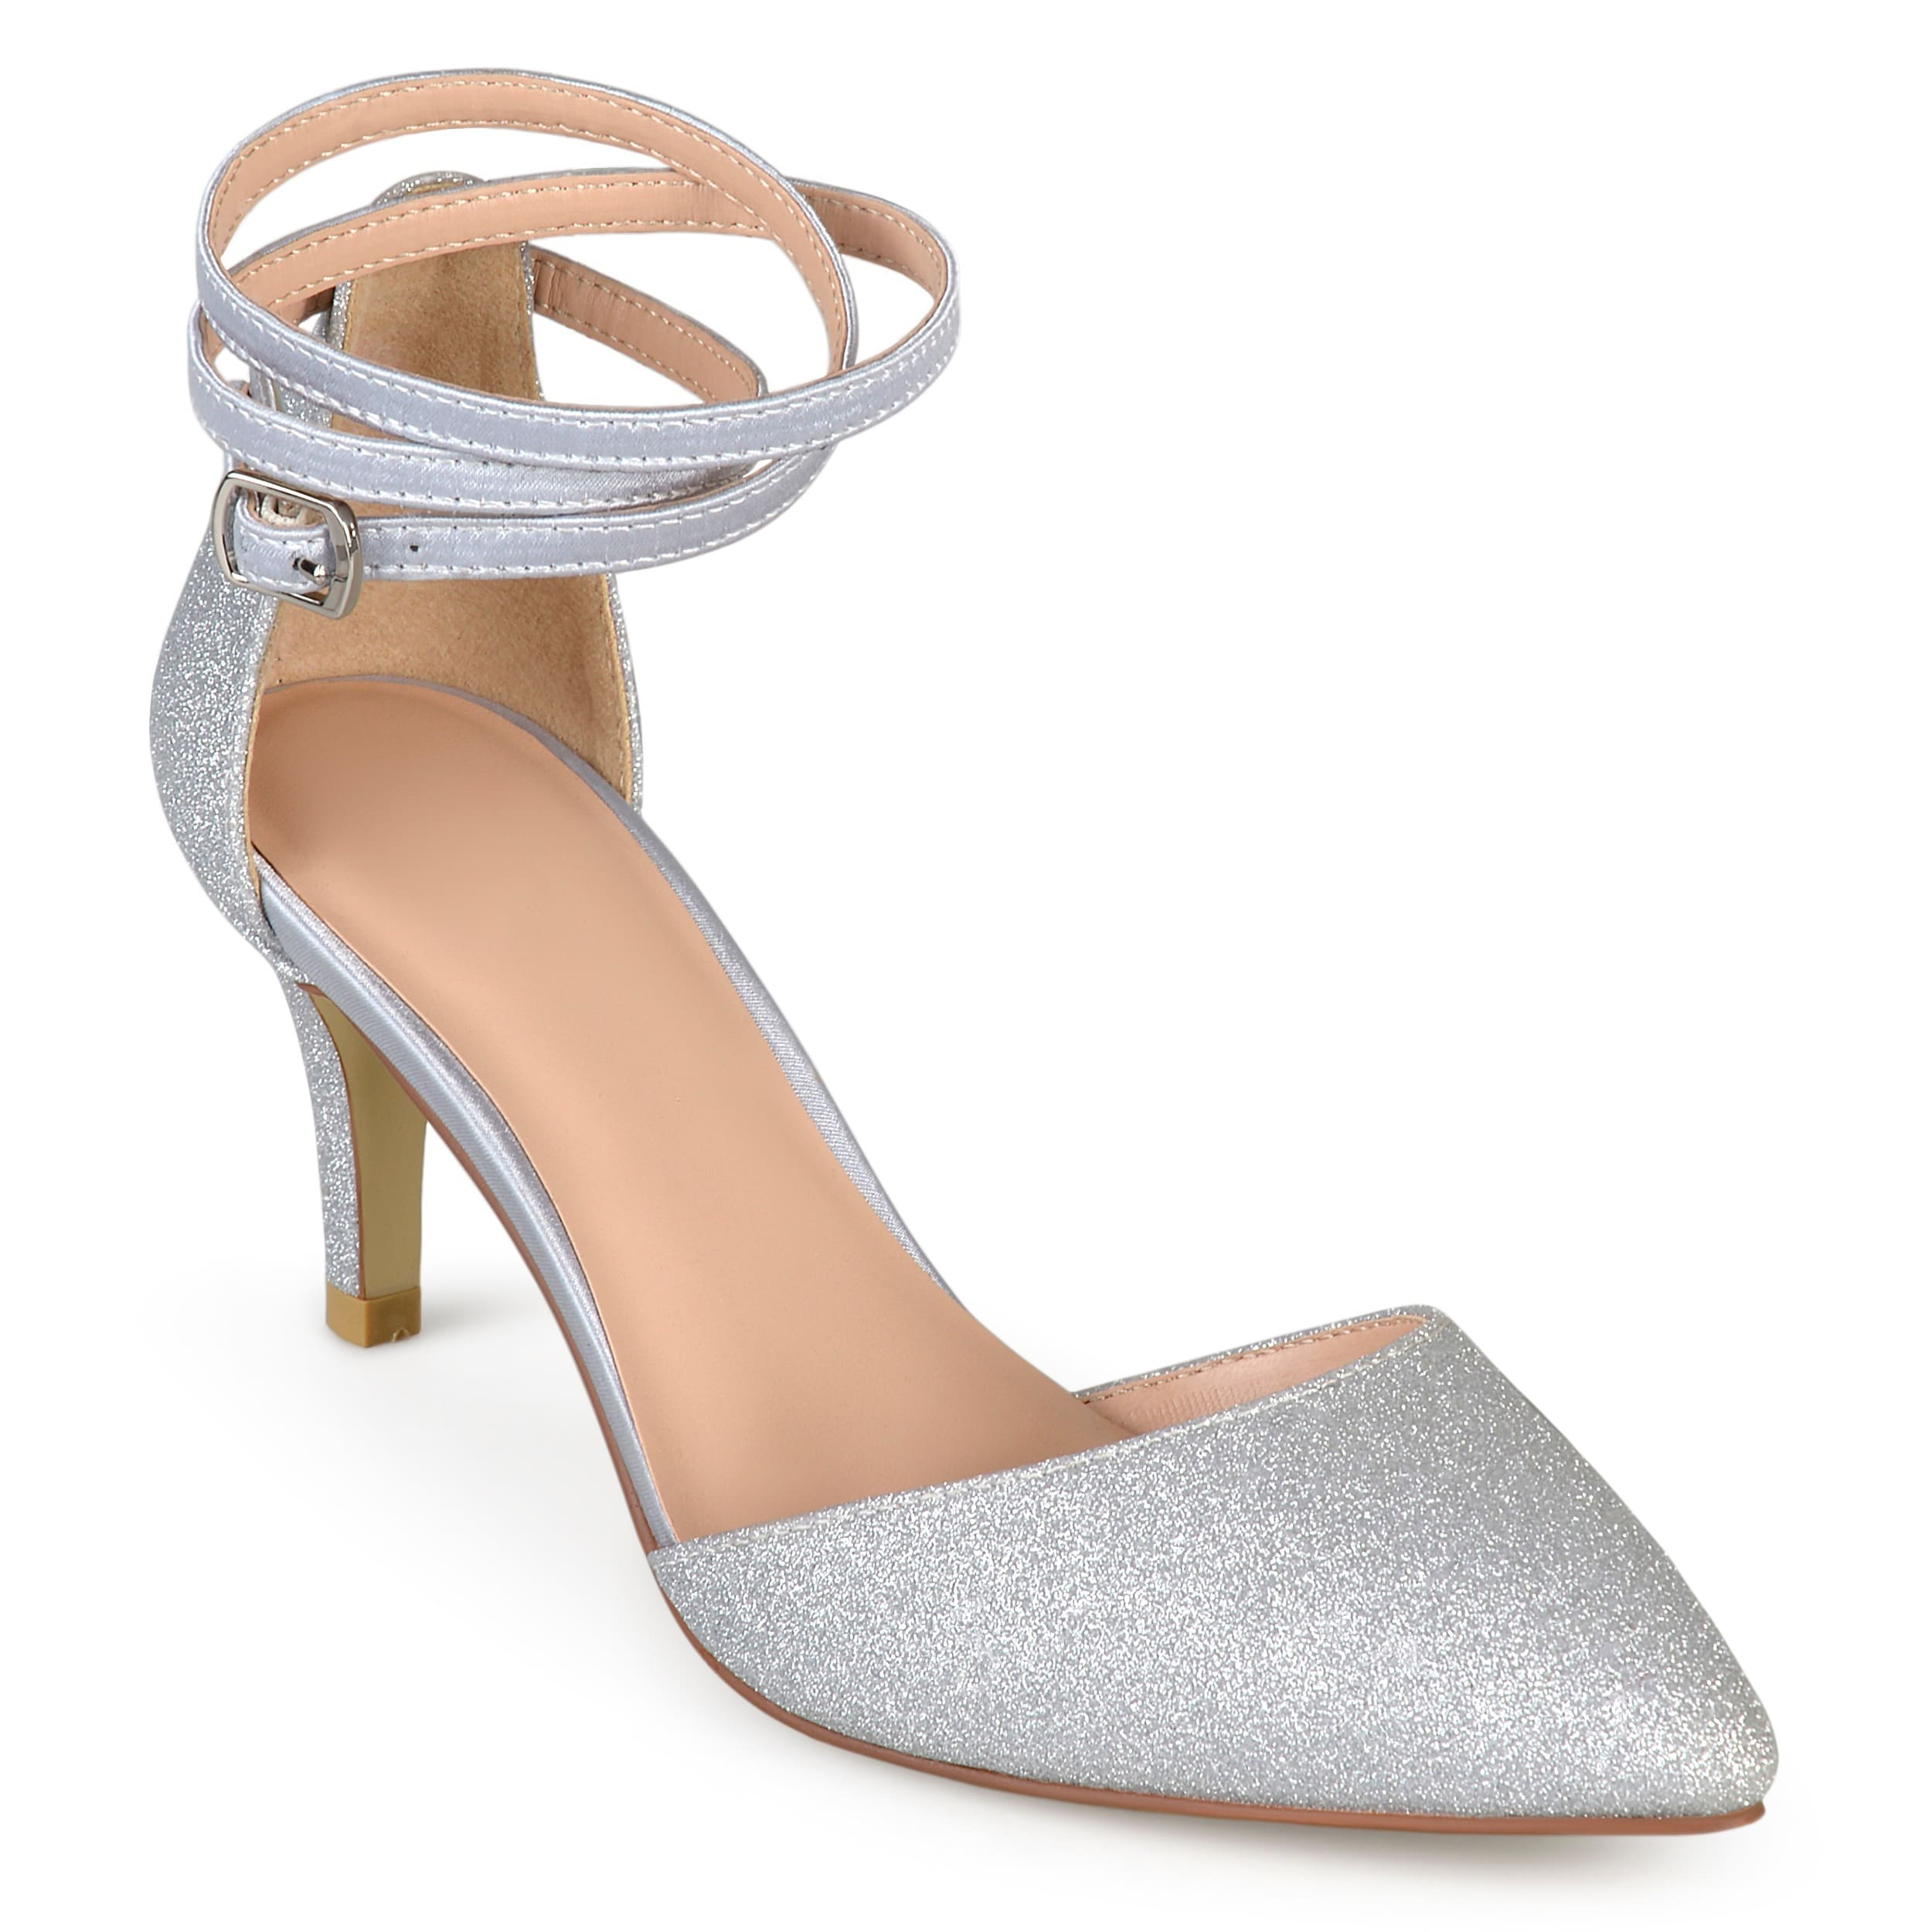 a3dc15ac3cd9 Shop Journee Collection Women s  Luela  Glitter Pointed Toe D orsay ...